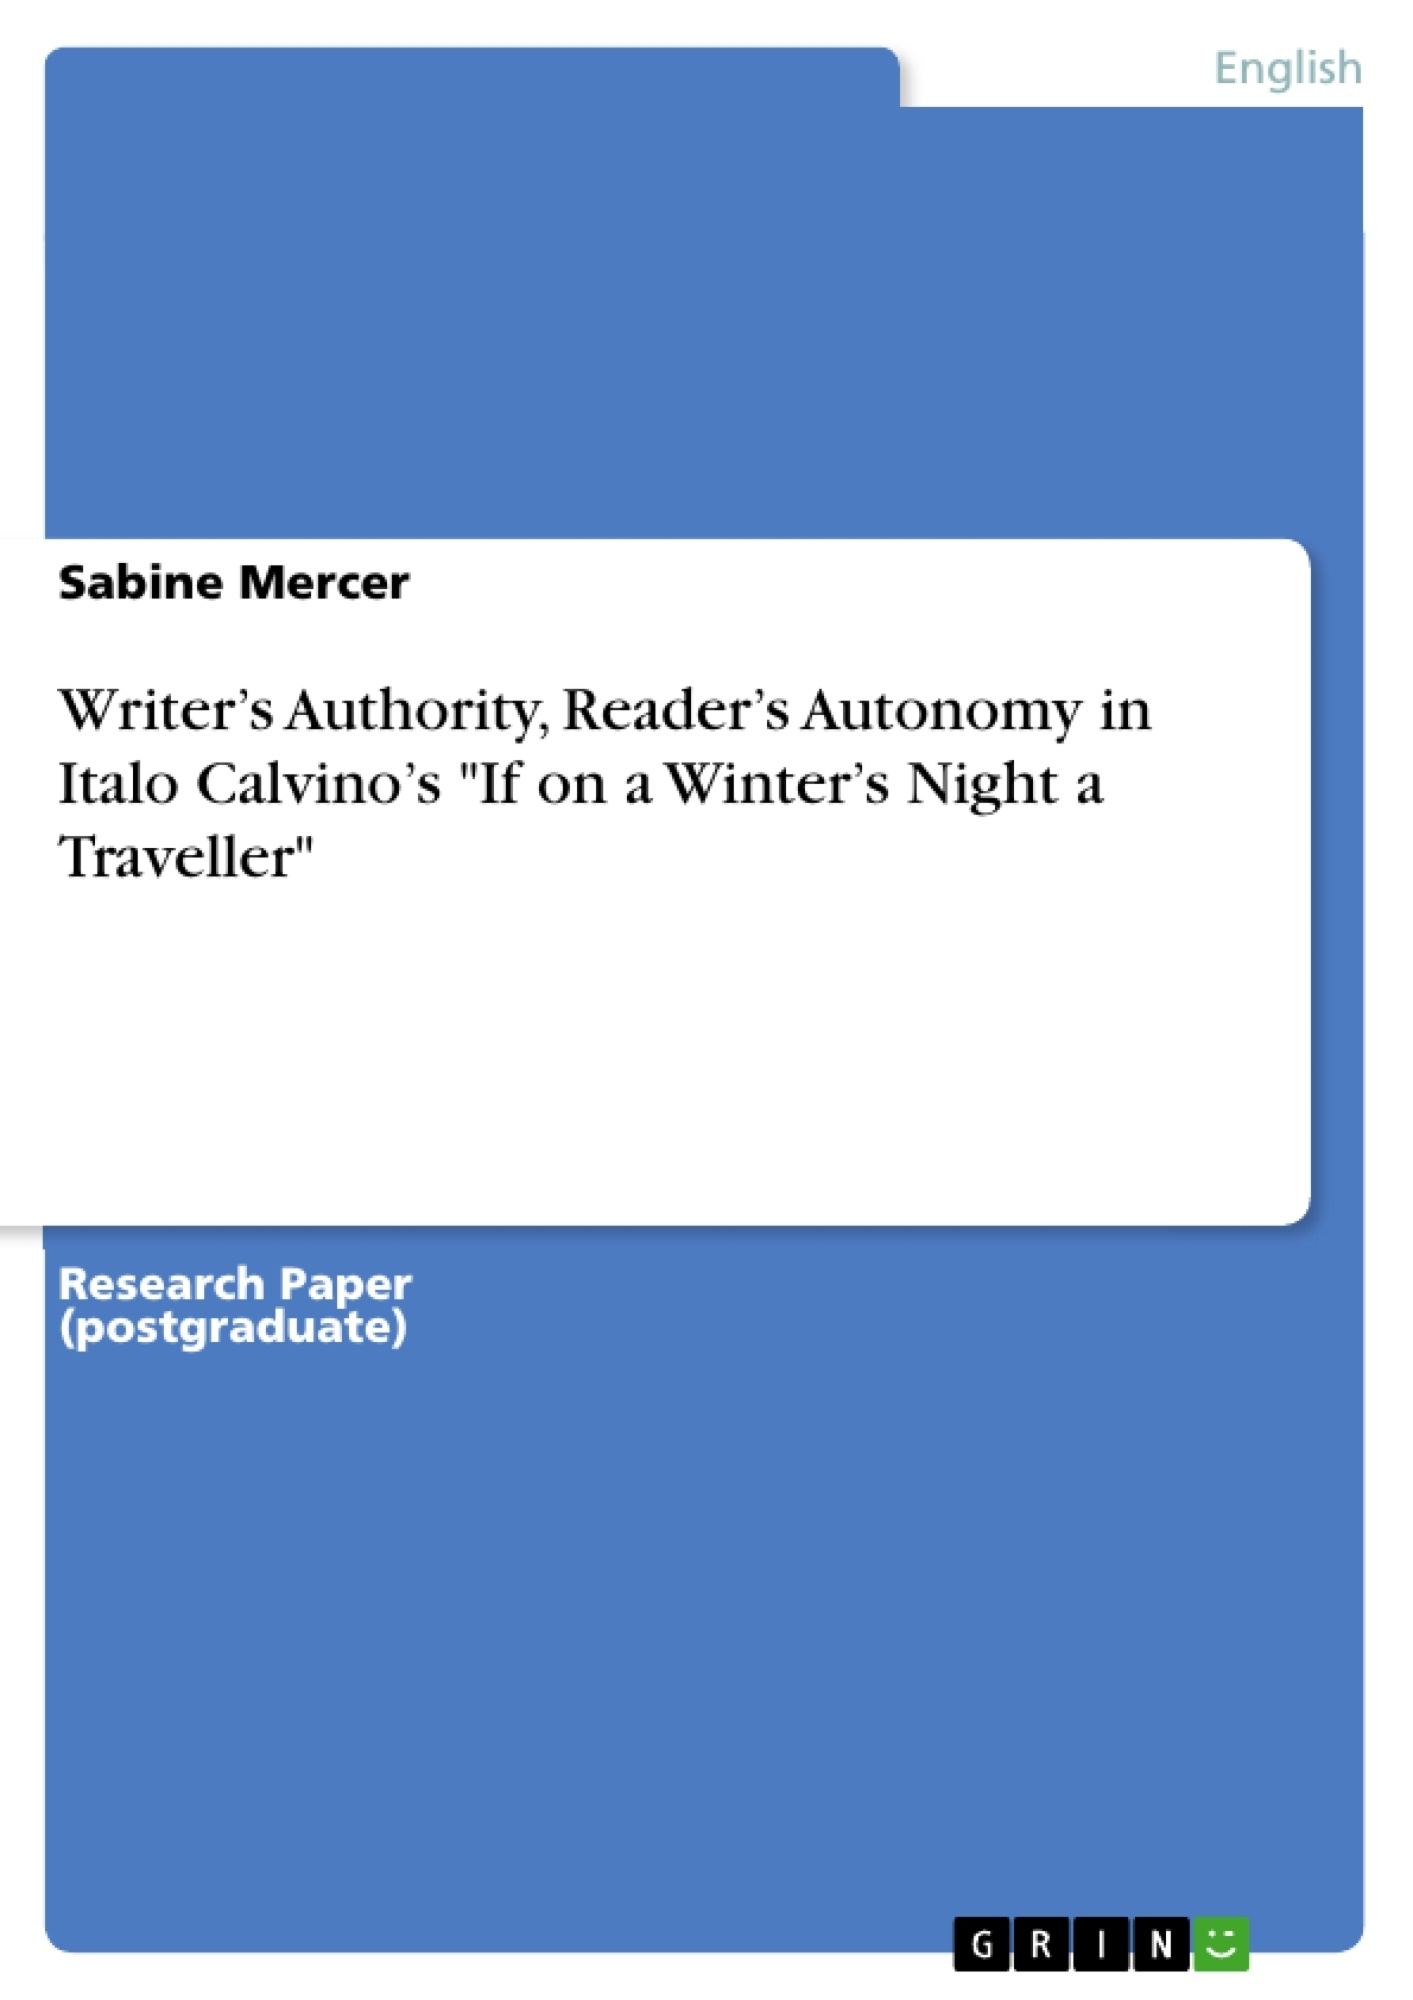 """Title: Writer's Authority, Reader's Autonomy in Italo Calvino's """"If on a Winter's Night a Traveller"""""""